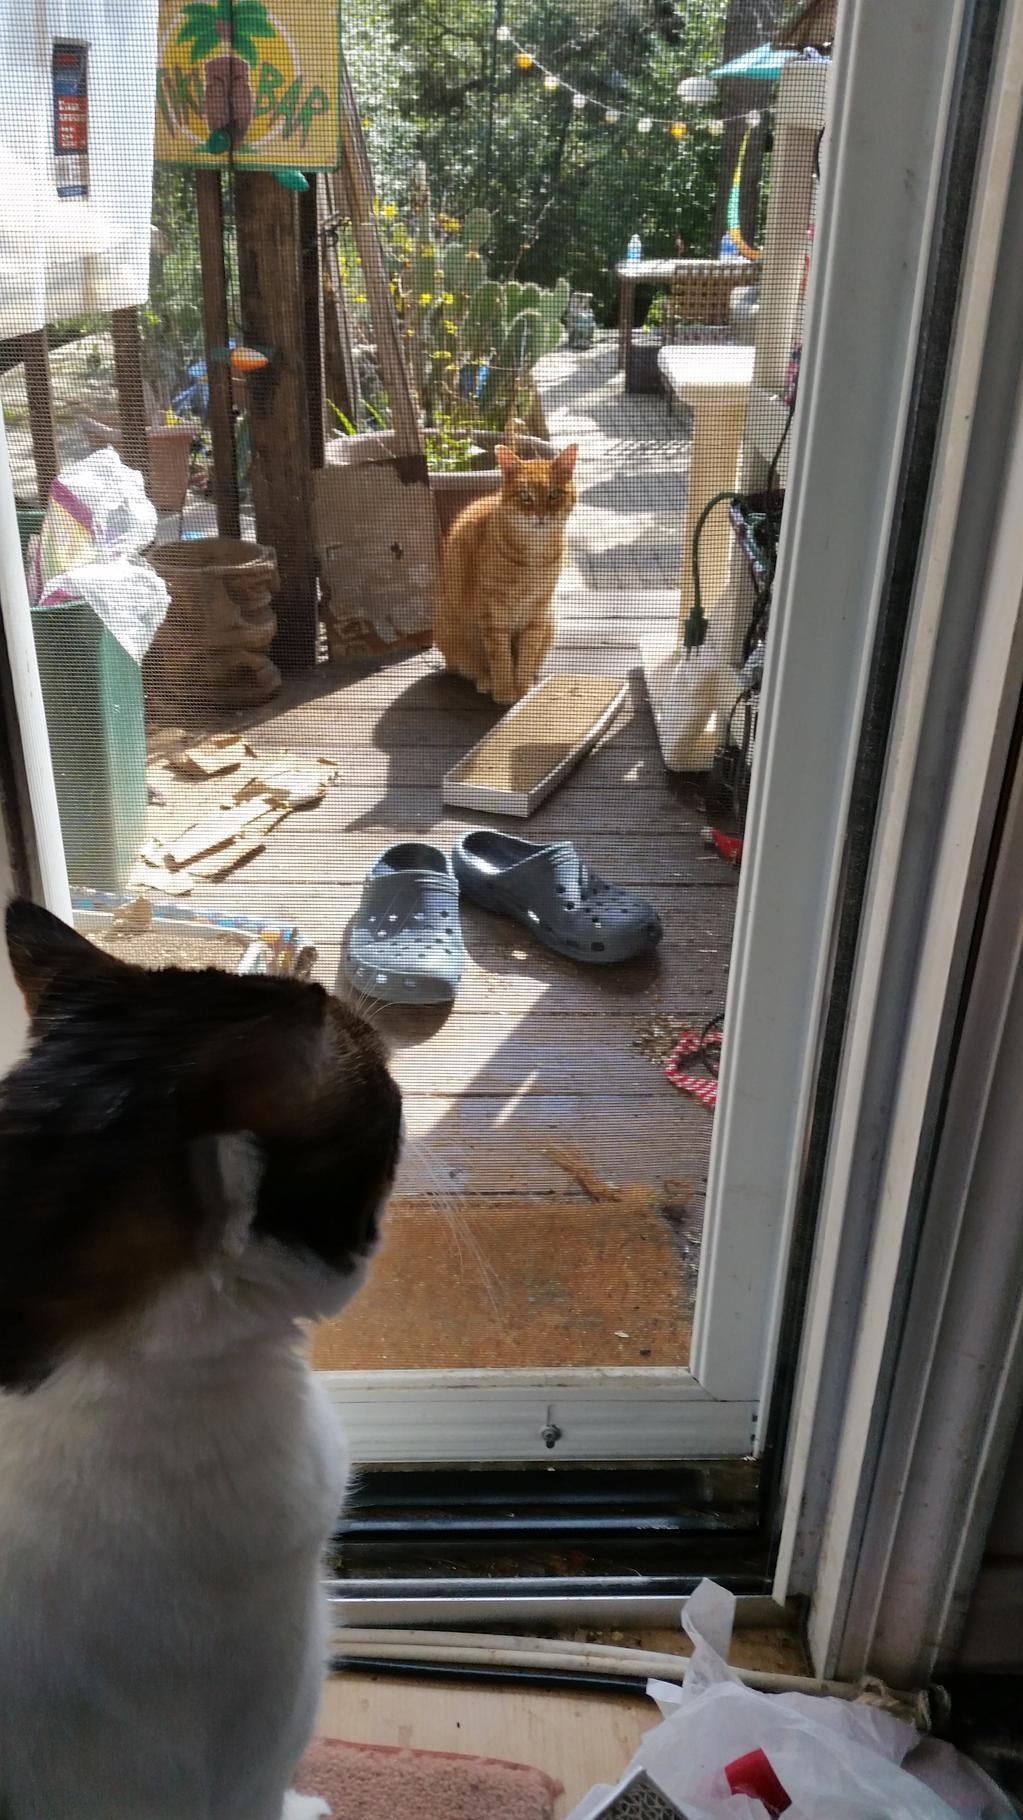 ZACK AND ORNJI LOOKING AT EACH OTHER THRU SCREEN DOOR